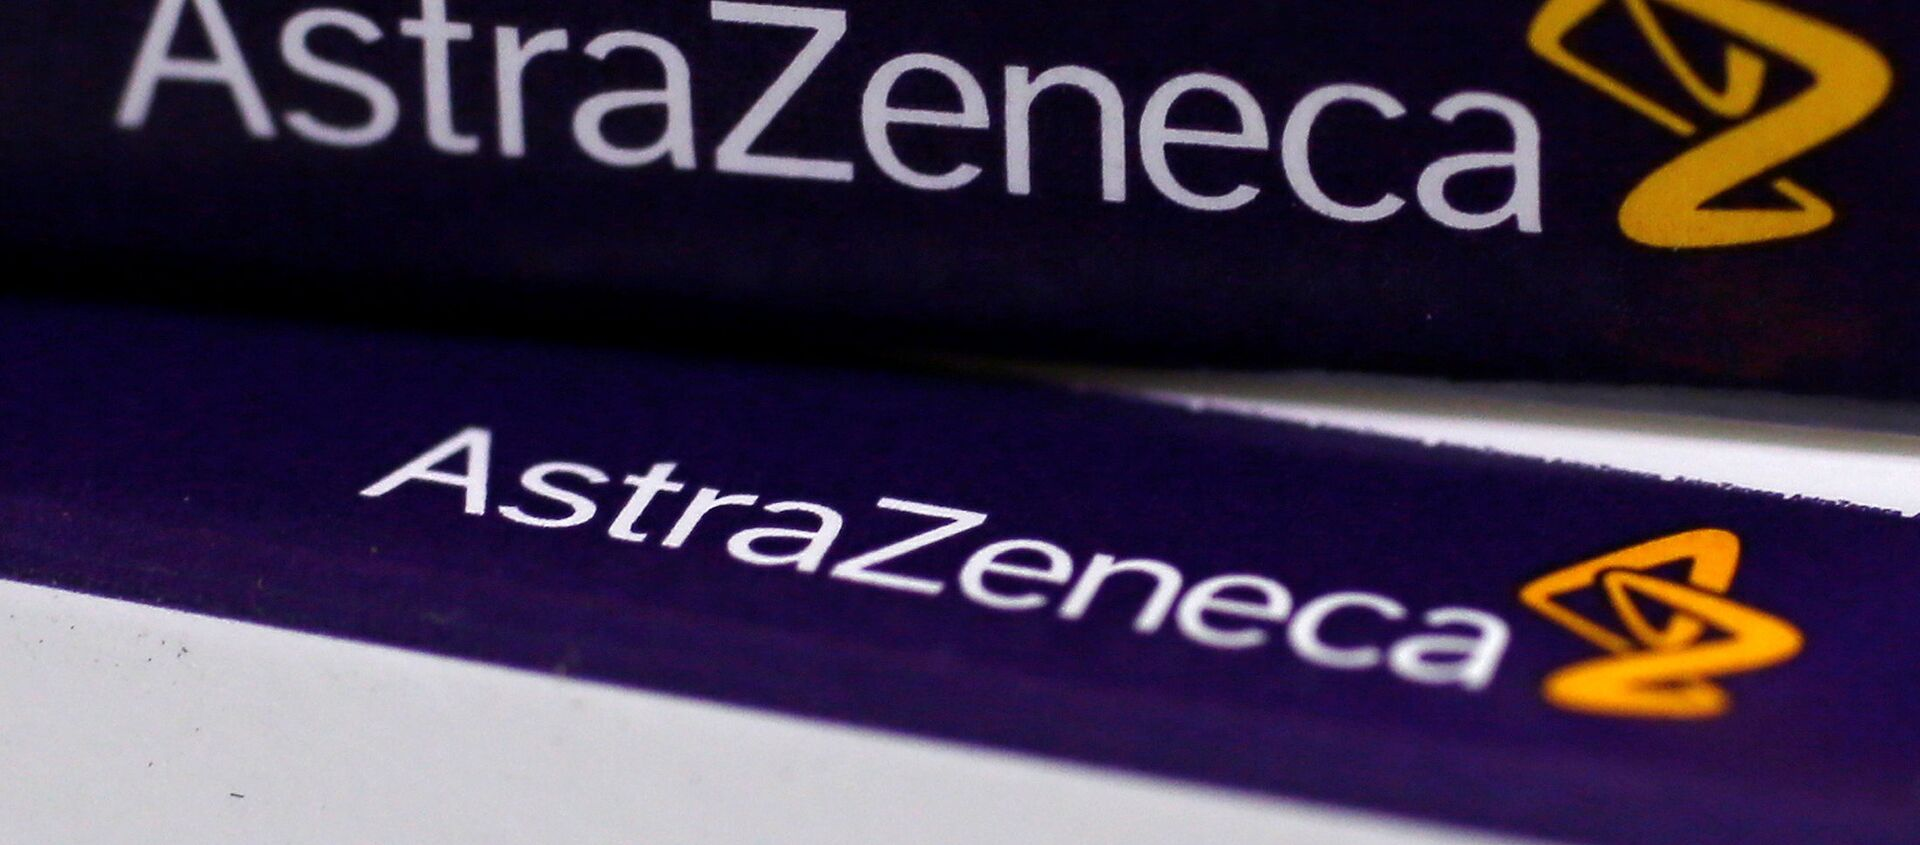 FILE PHOTO:The logo of AstraZeneca is seen on medication packages in a pharmacy in London. - Sputnik 日本, 1920, 02.03.2021